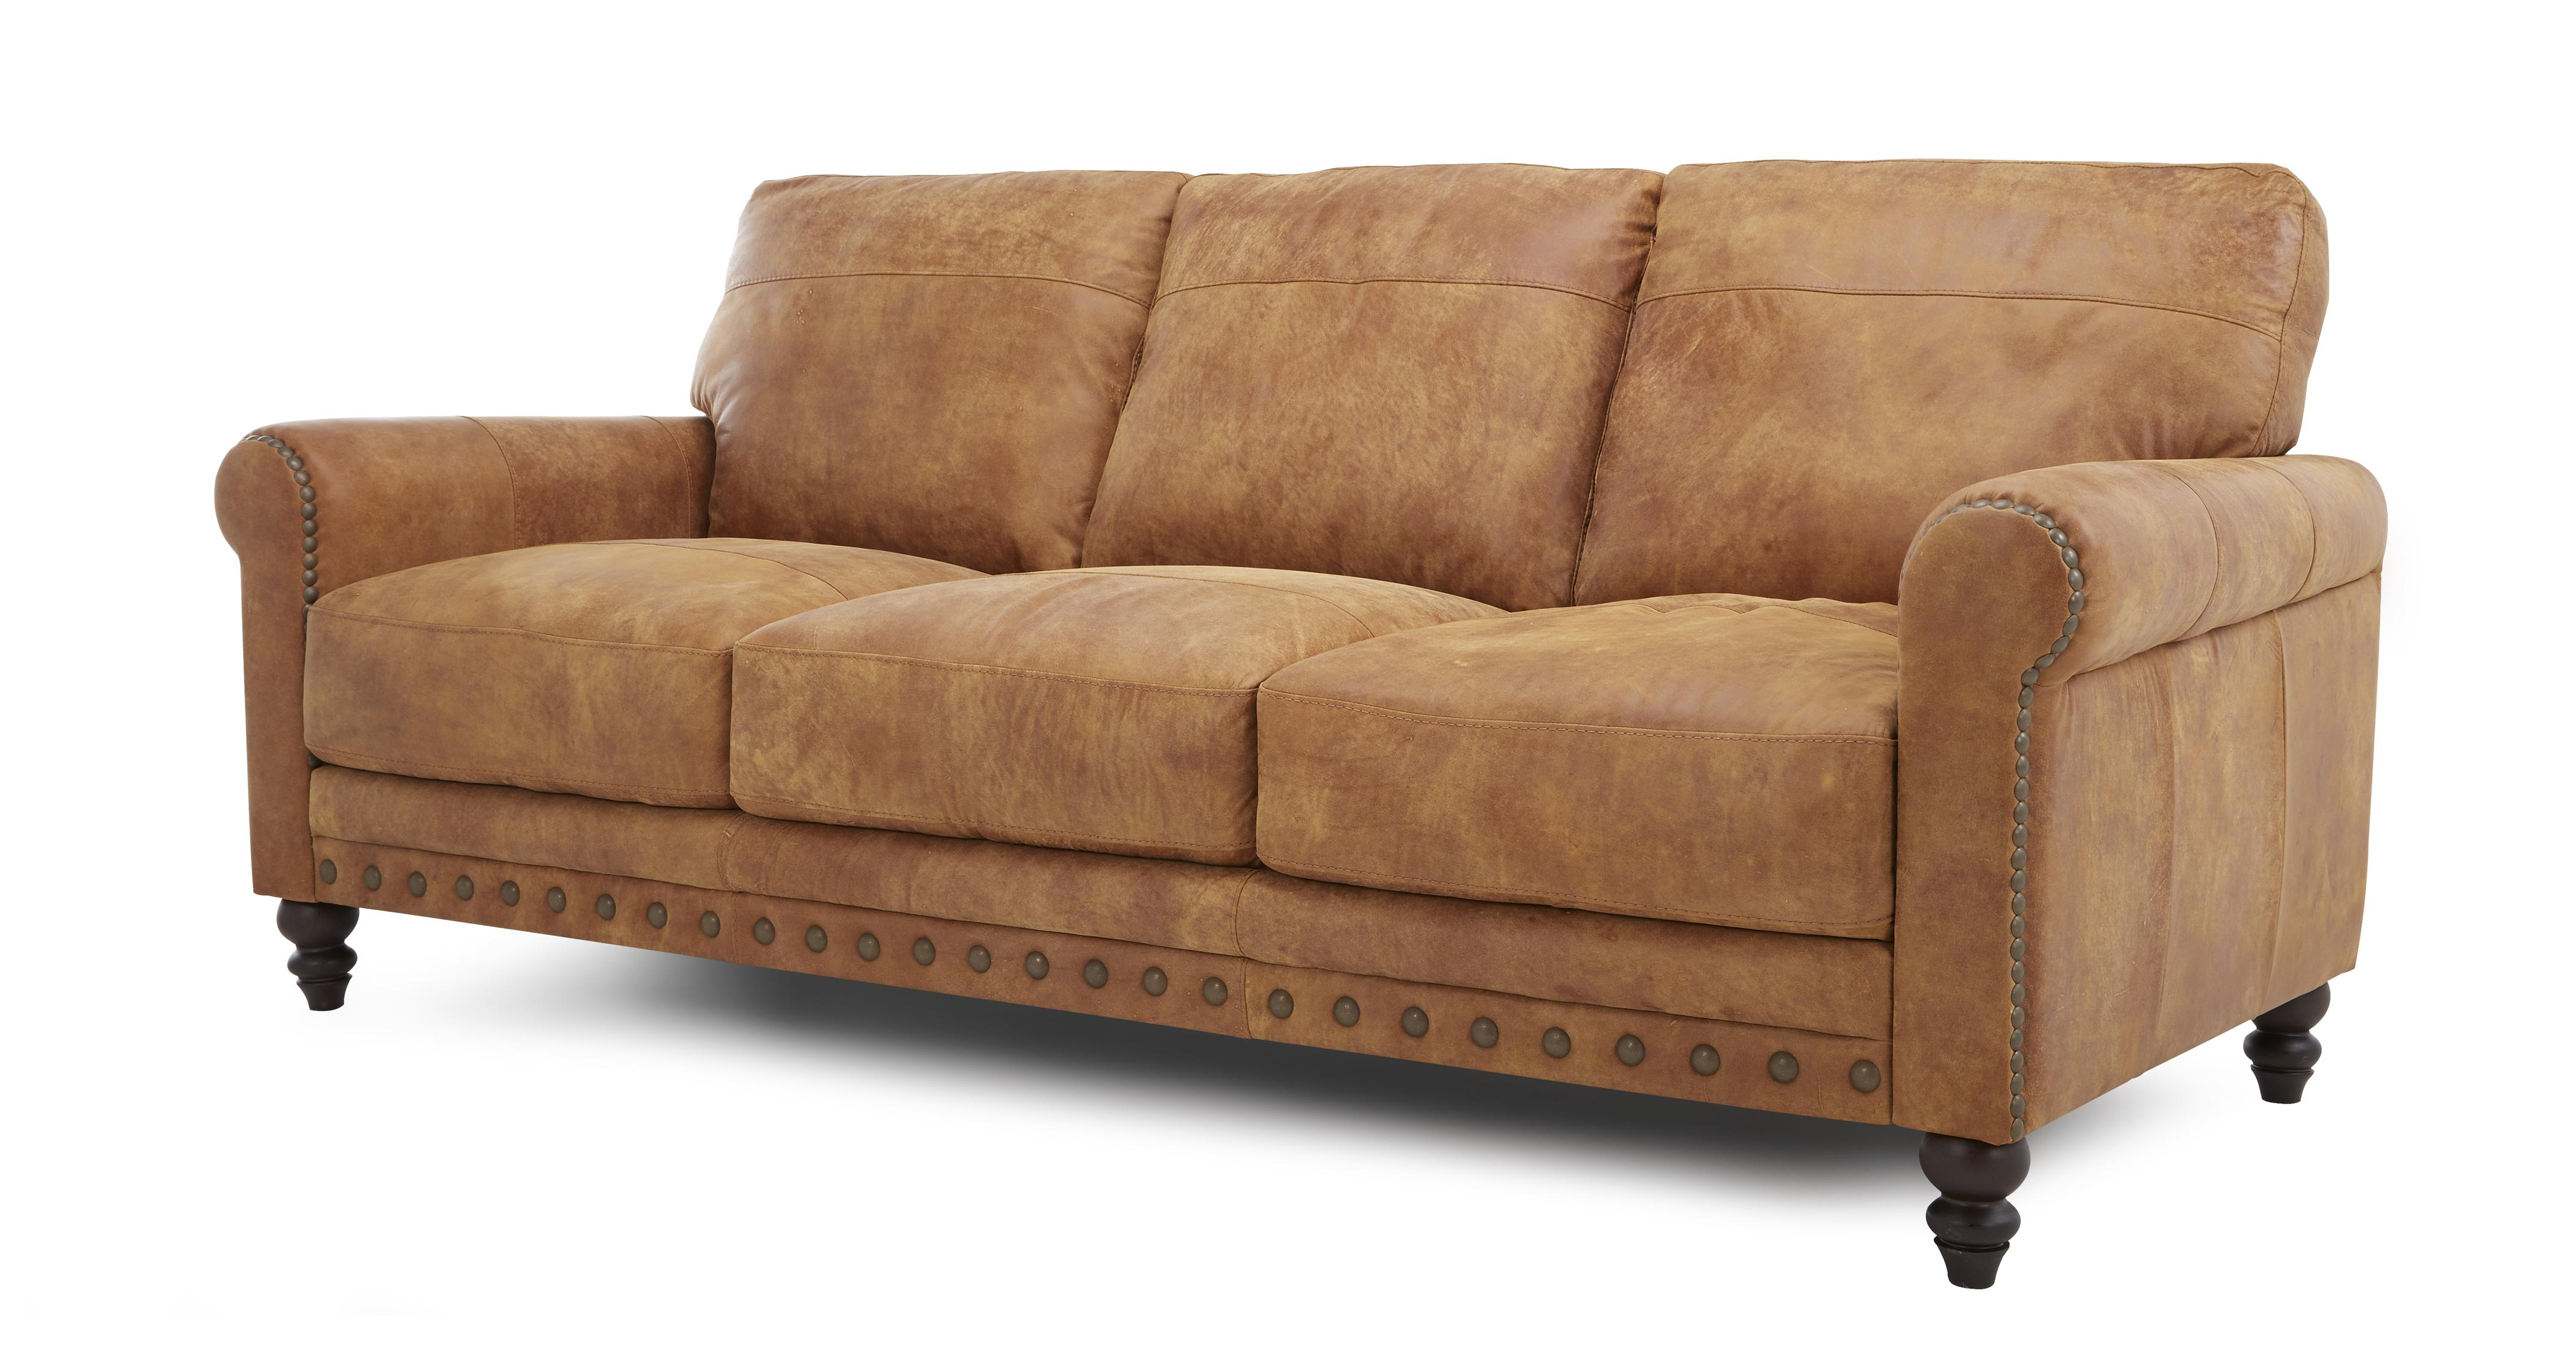 DFS Wade 100 Leather Set Inc 3 Seater Sofa 2 Seater Arm